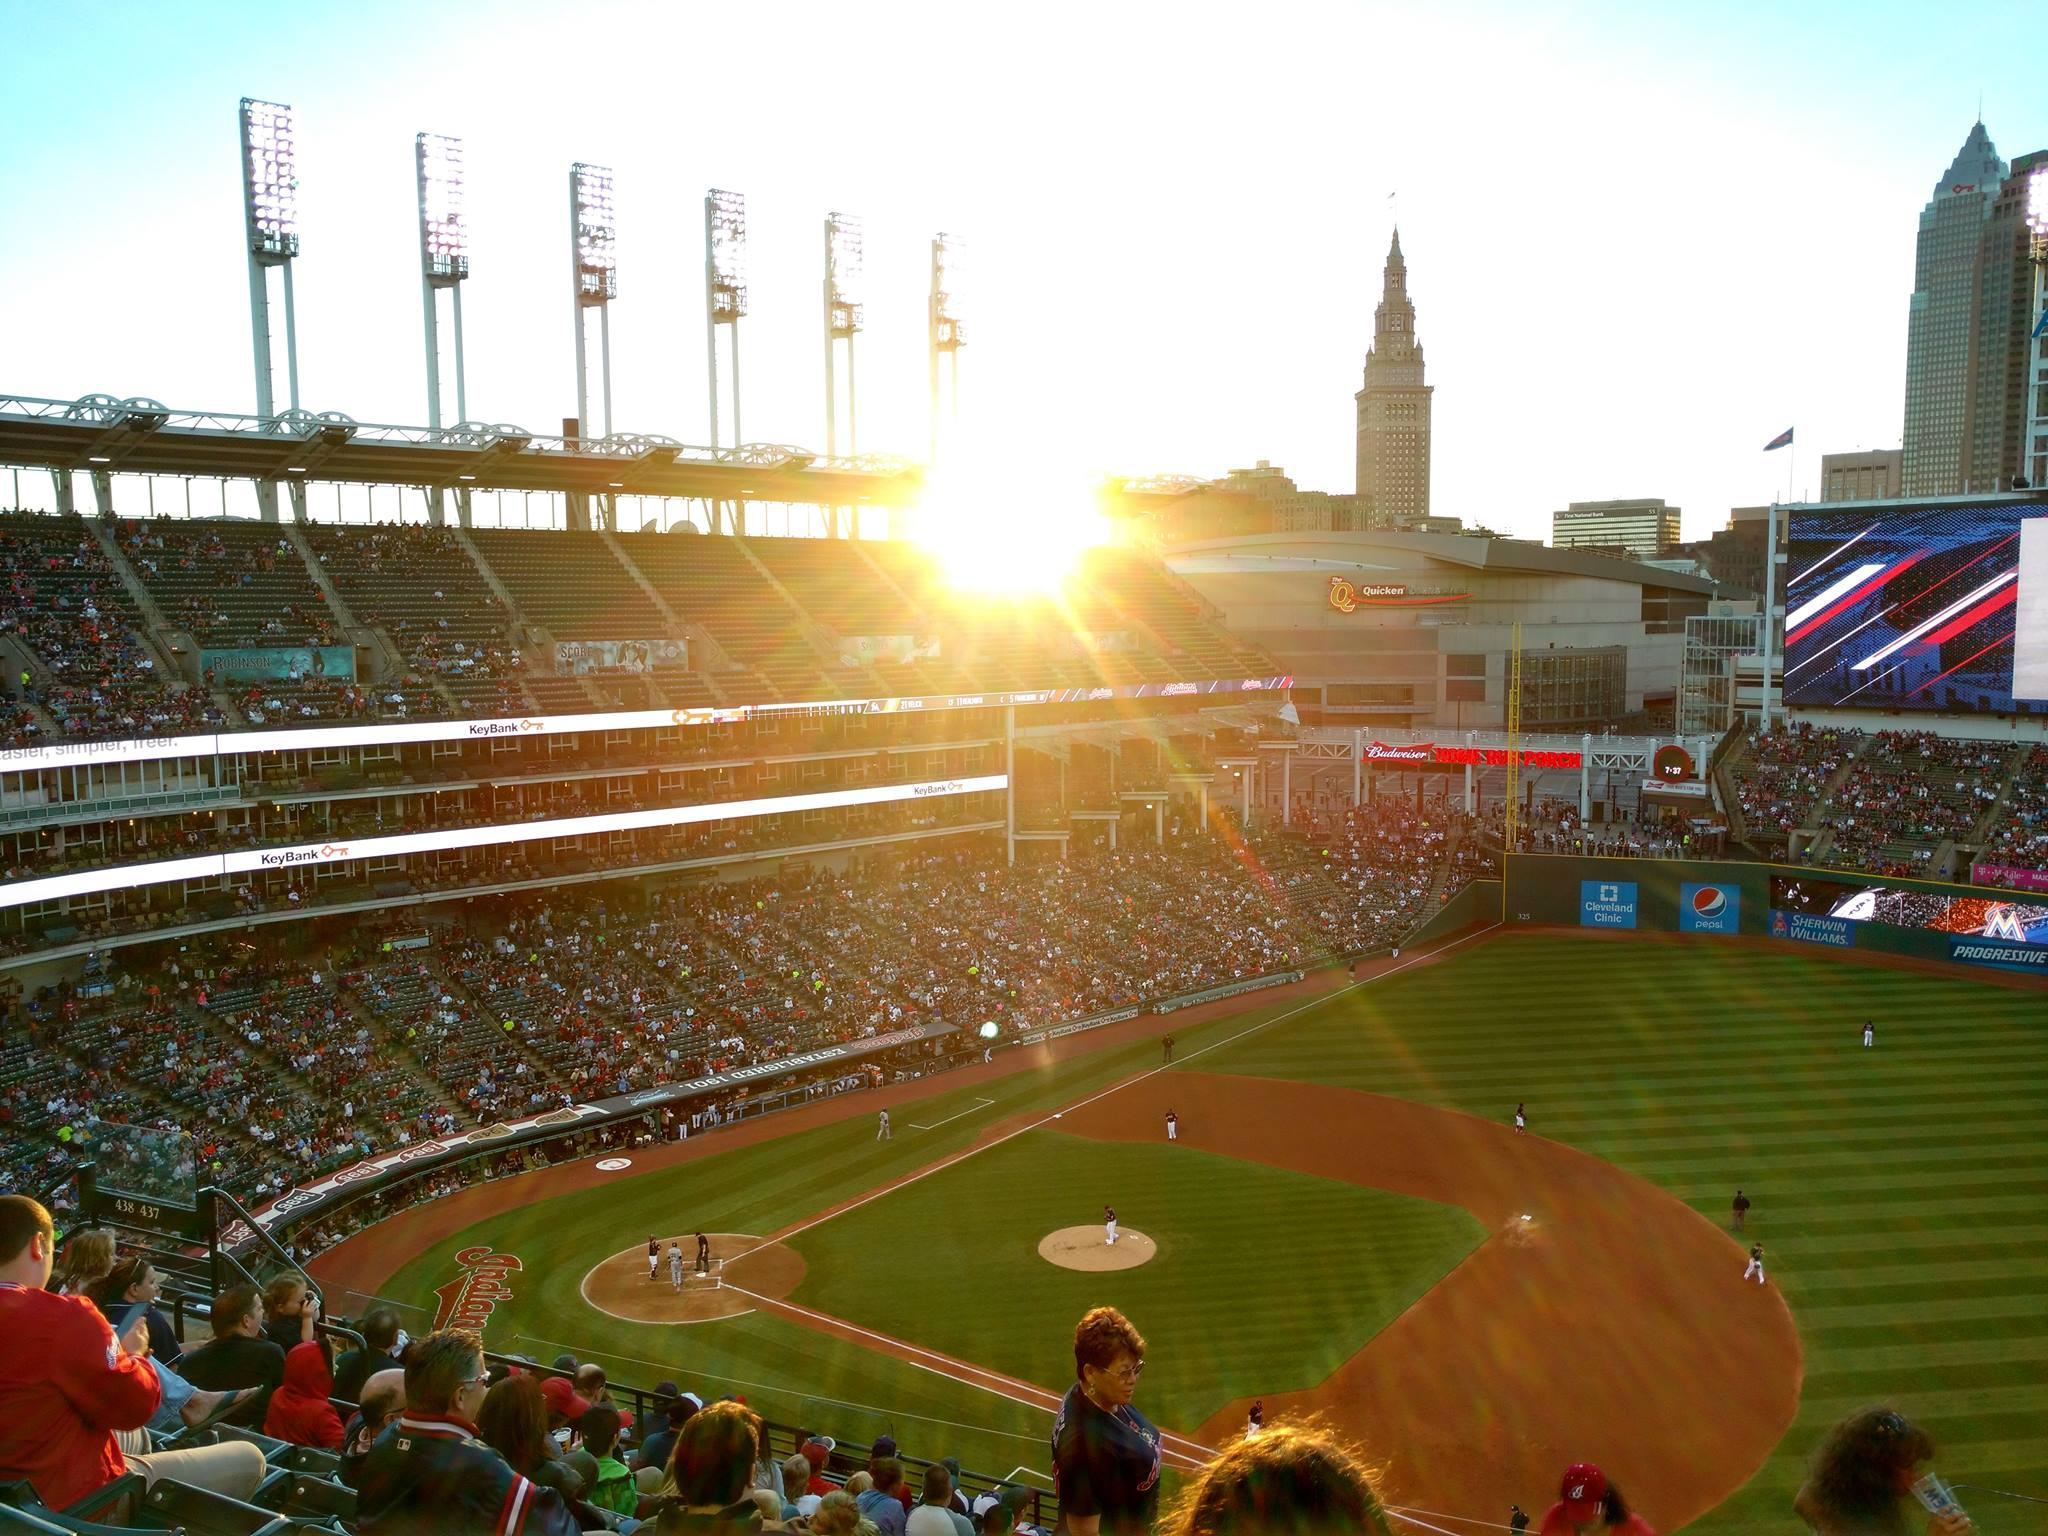 Cleveland Indians vs. Boston Red Sox (Away)